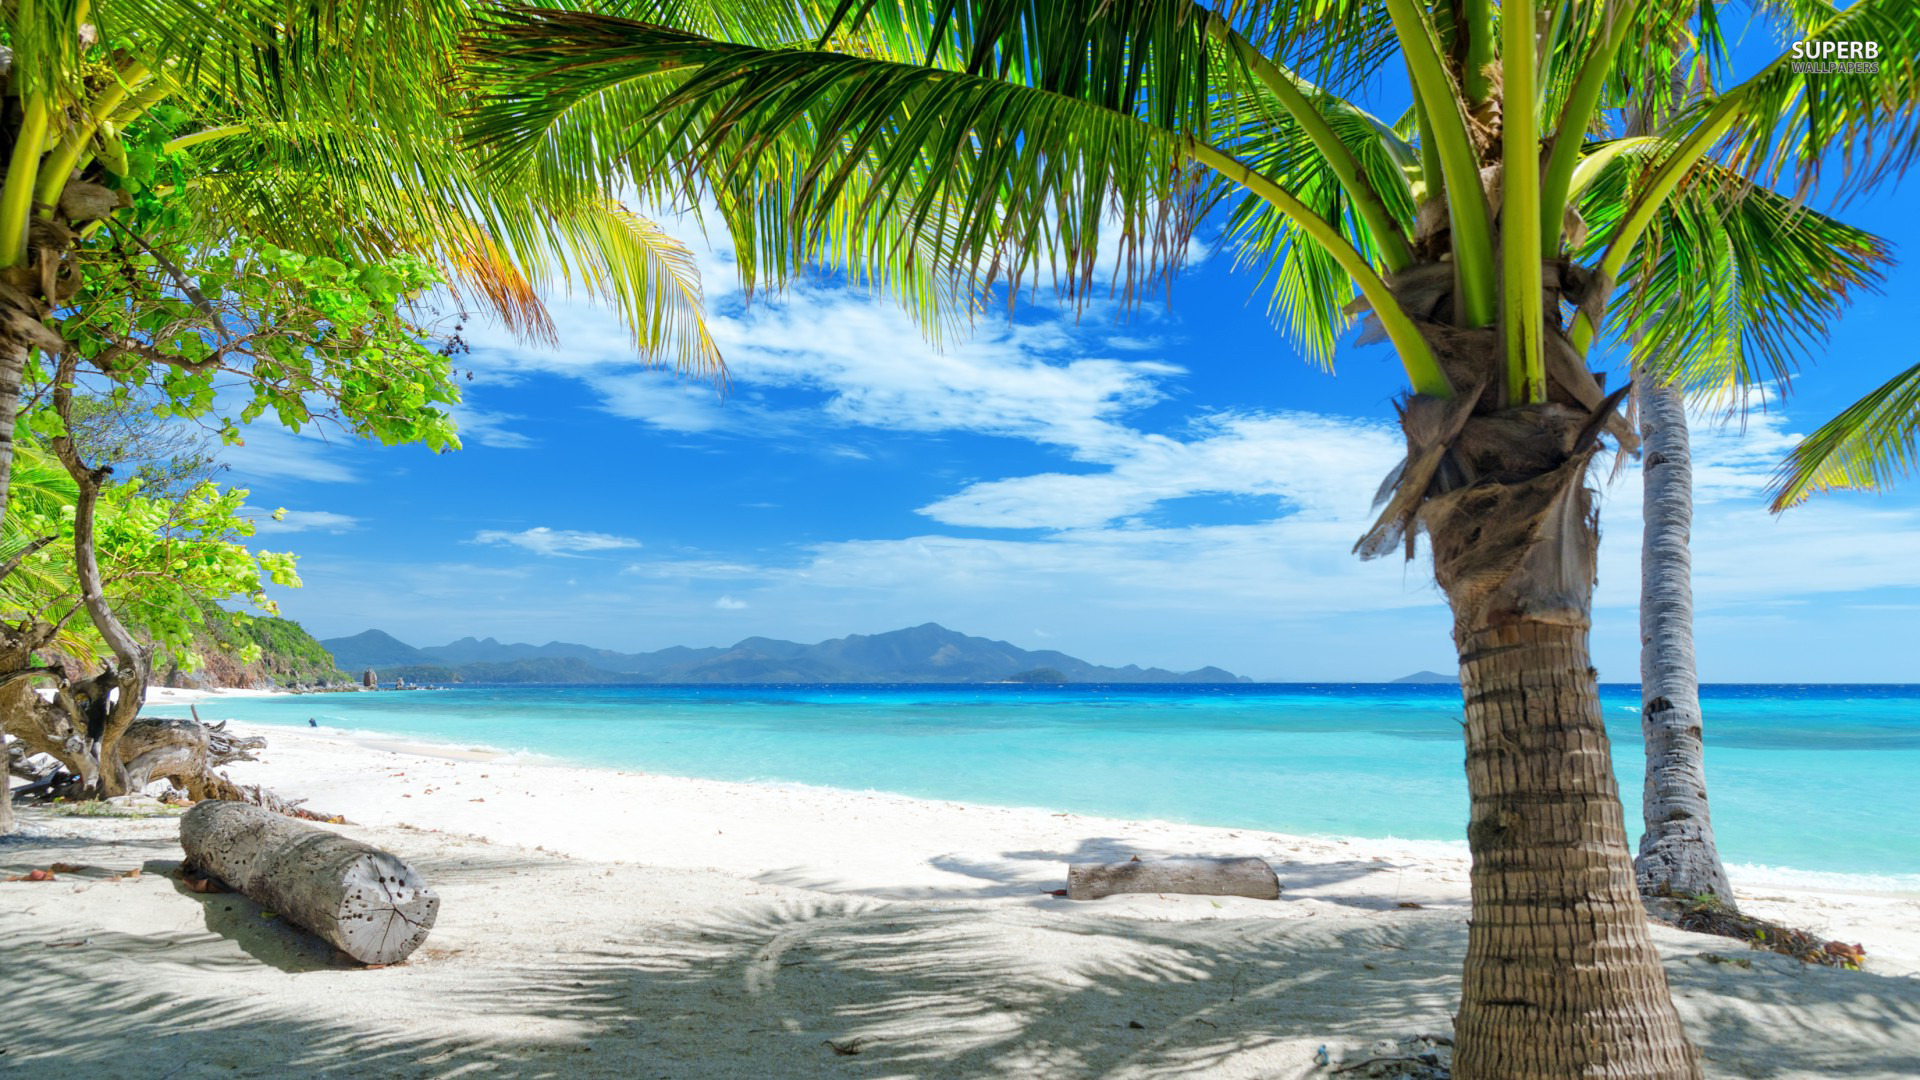 Hd wallpaper beach - 25 Beautiful Beach Wallpapers Hd Mixhd Wallpapers